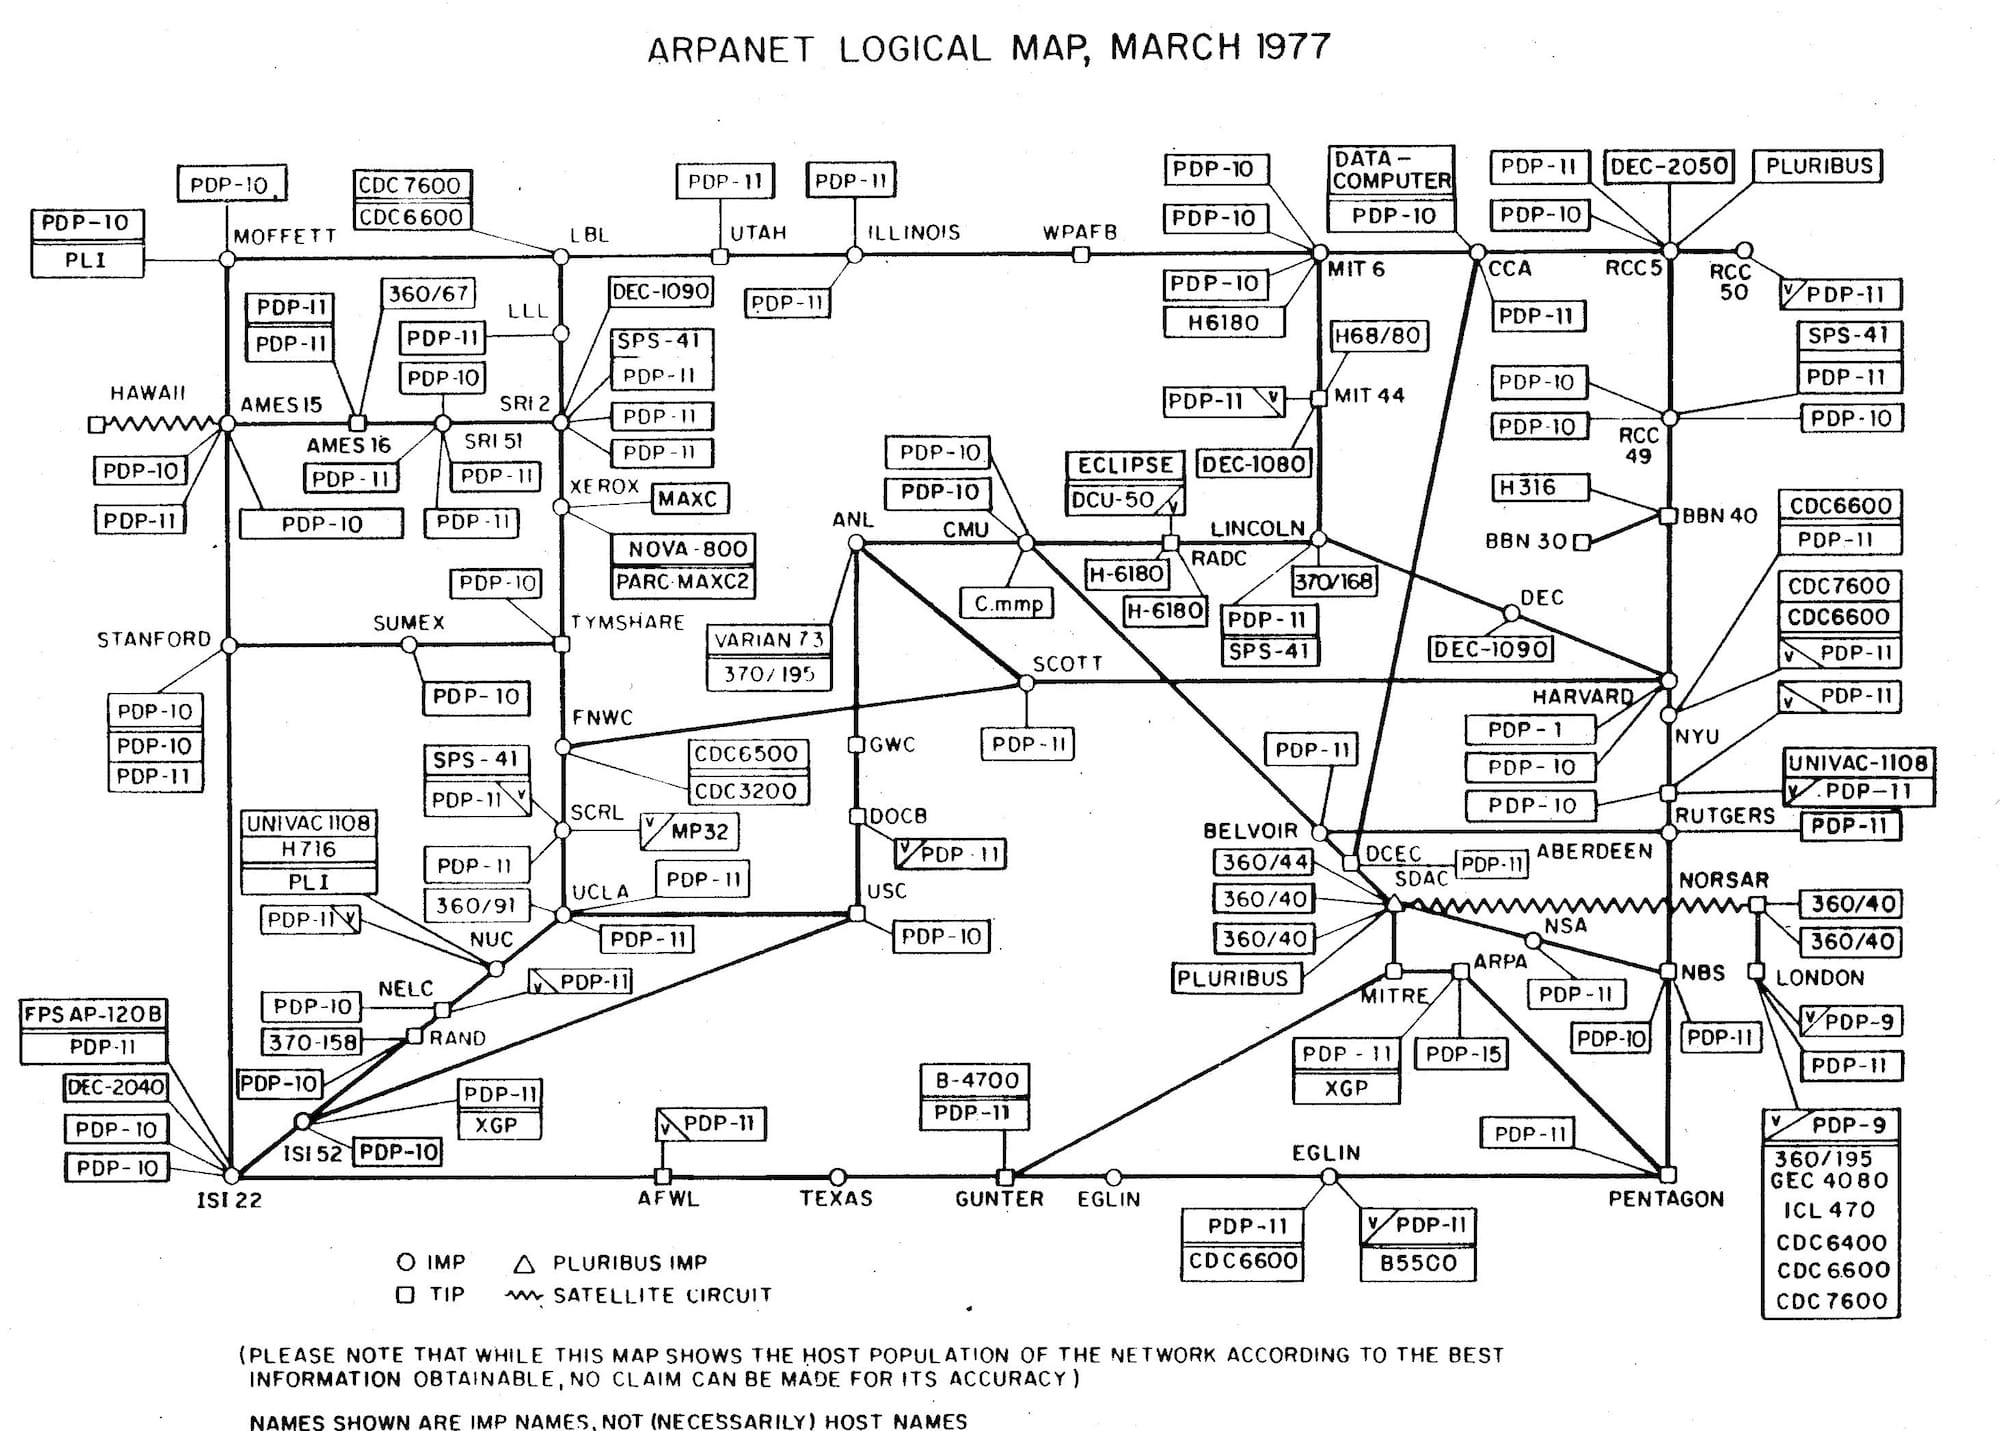 ARPANet map, 1977. © Advanced Projects Research Agency